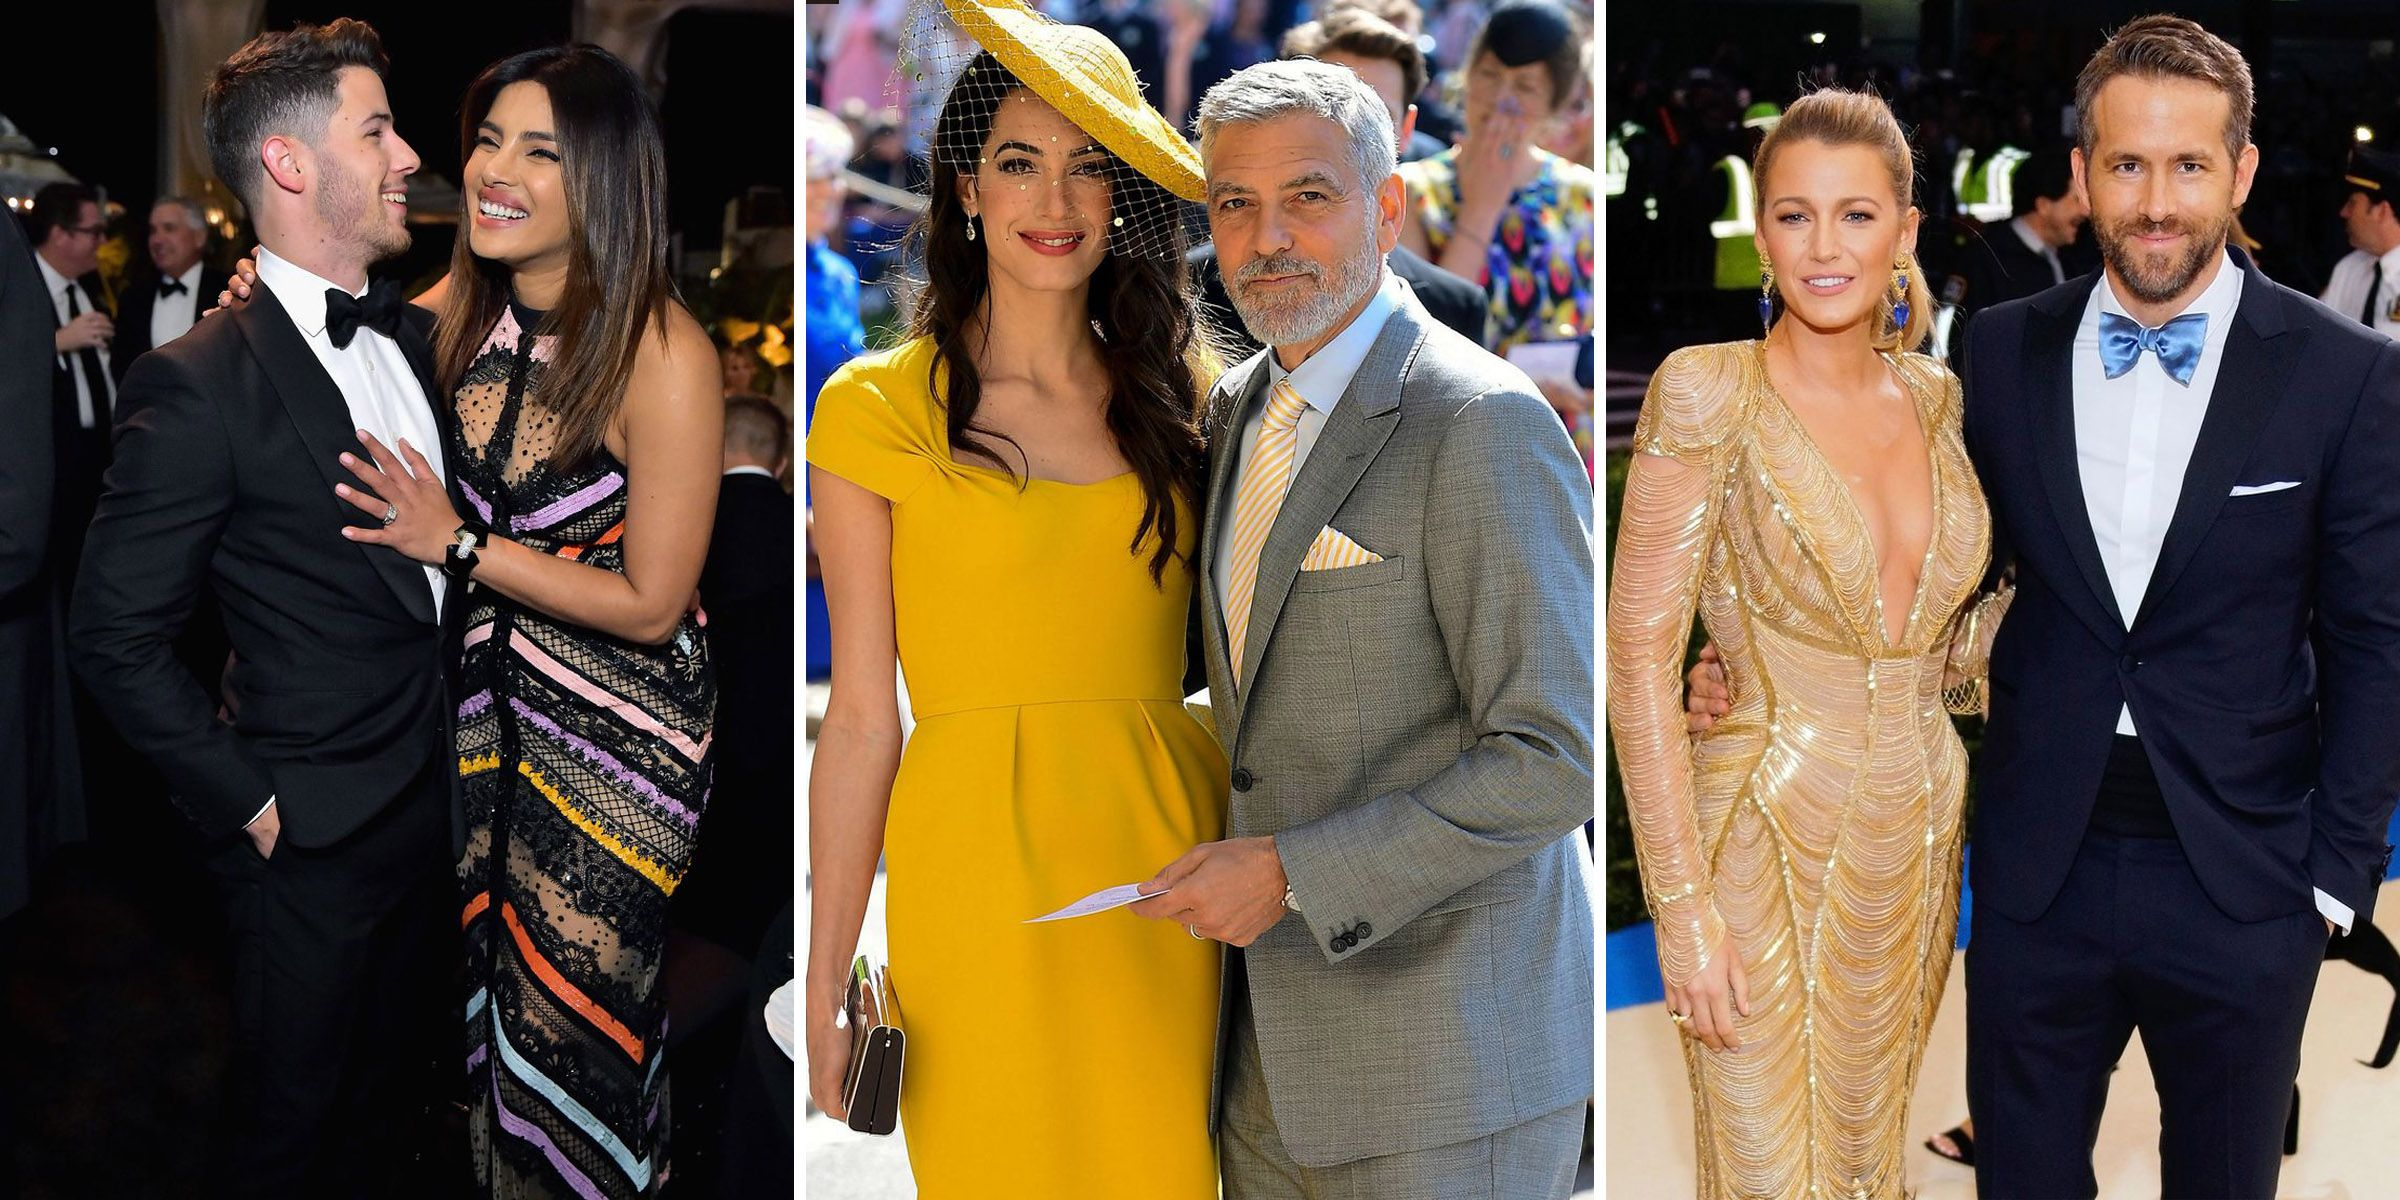 40 Celebrity Couples With Big Age Differences Famous Couples Far Apart In Age